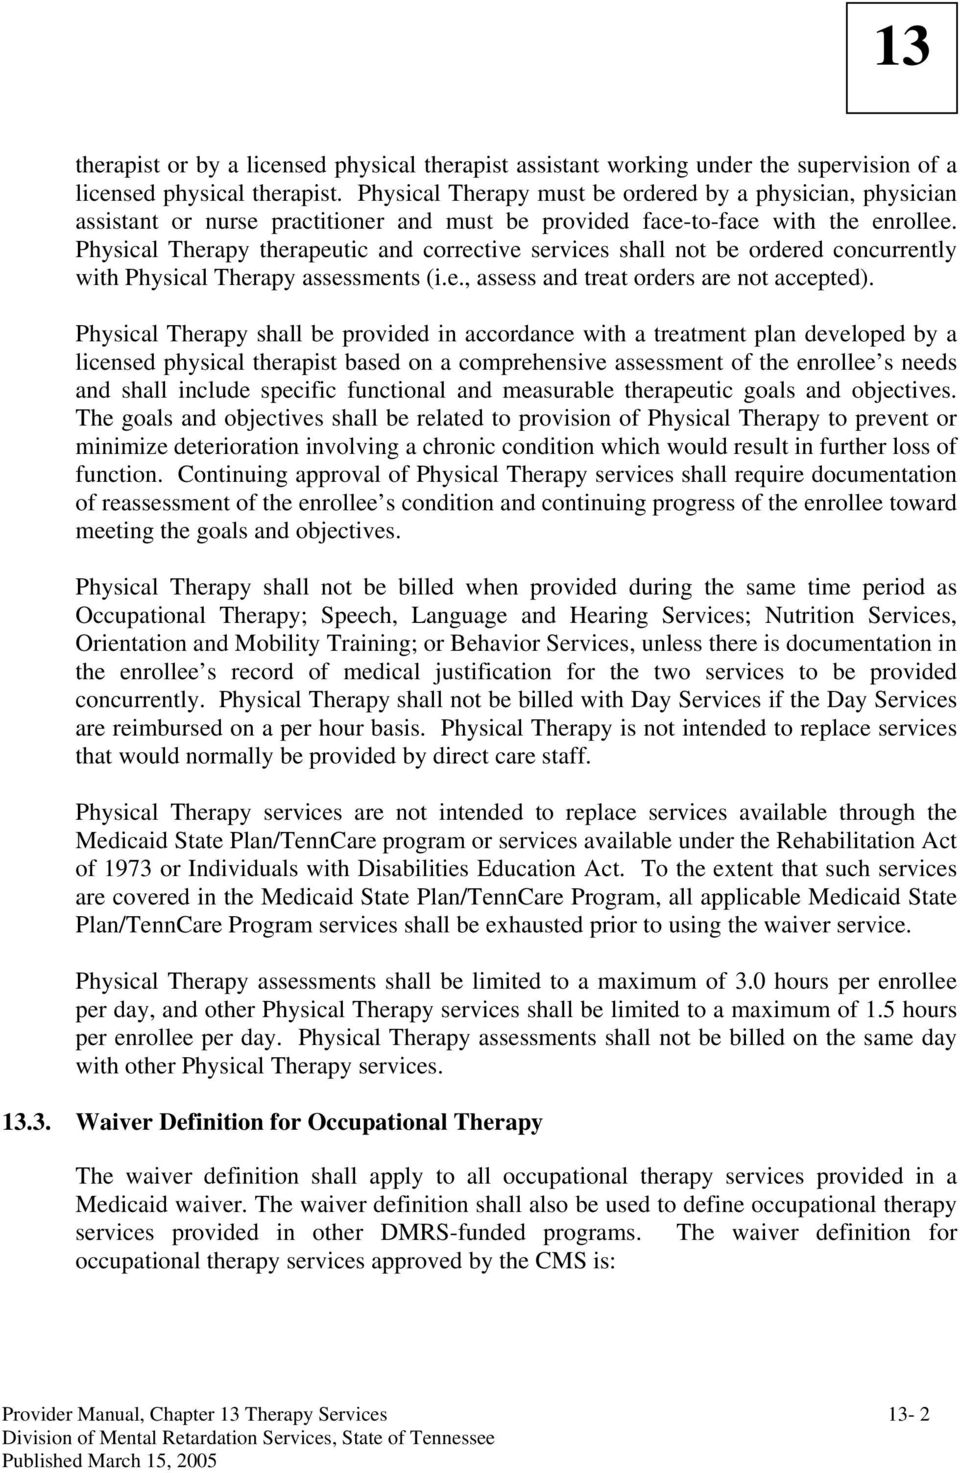 Physical Therapy therapeutic and corrective services shall not be ordered concurrently with Physical Therapy assessments (i.e., assess and treat orders are not accepted).